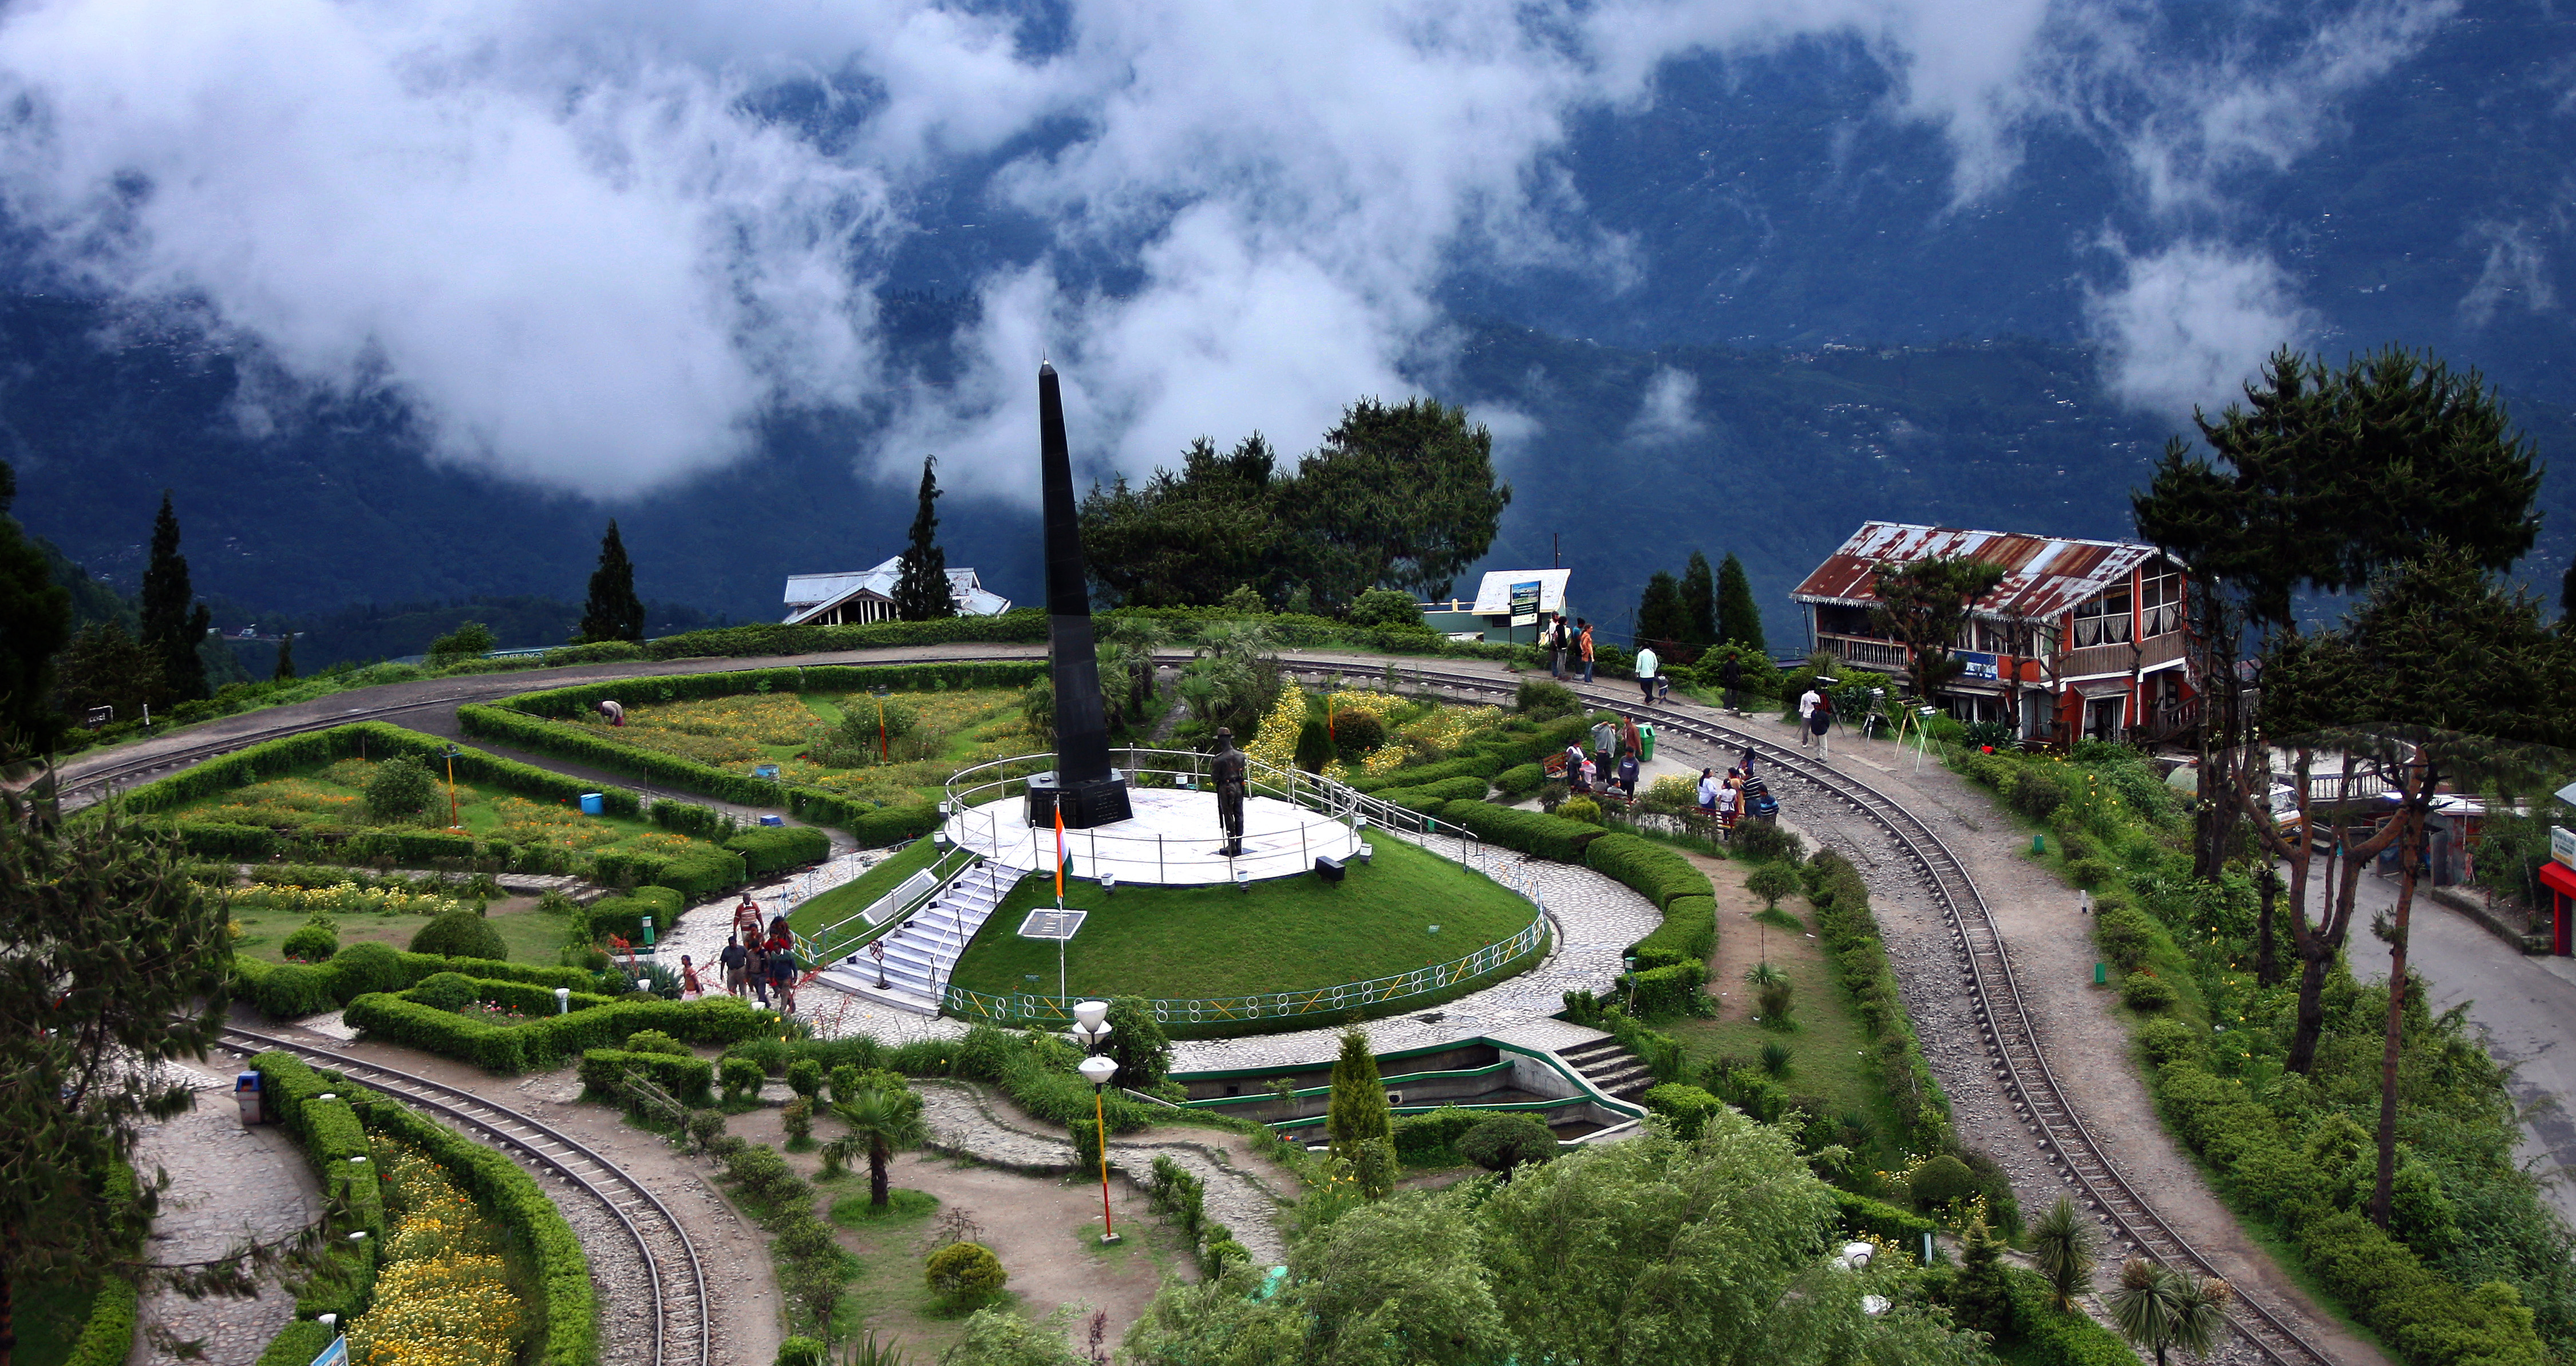 http://www.prasannaholidays.com/wp-content/uploads/2014/05/Darjeeling-Tourist-Place-Travel-In-India.jpg